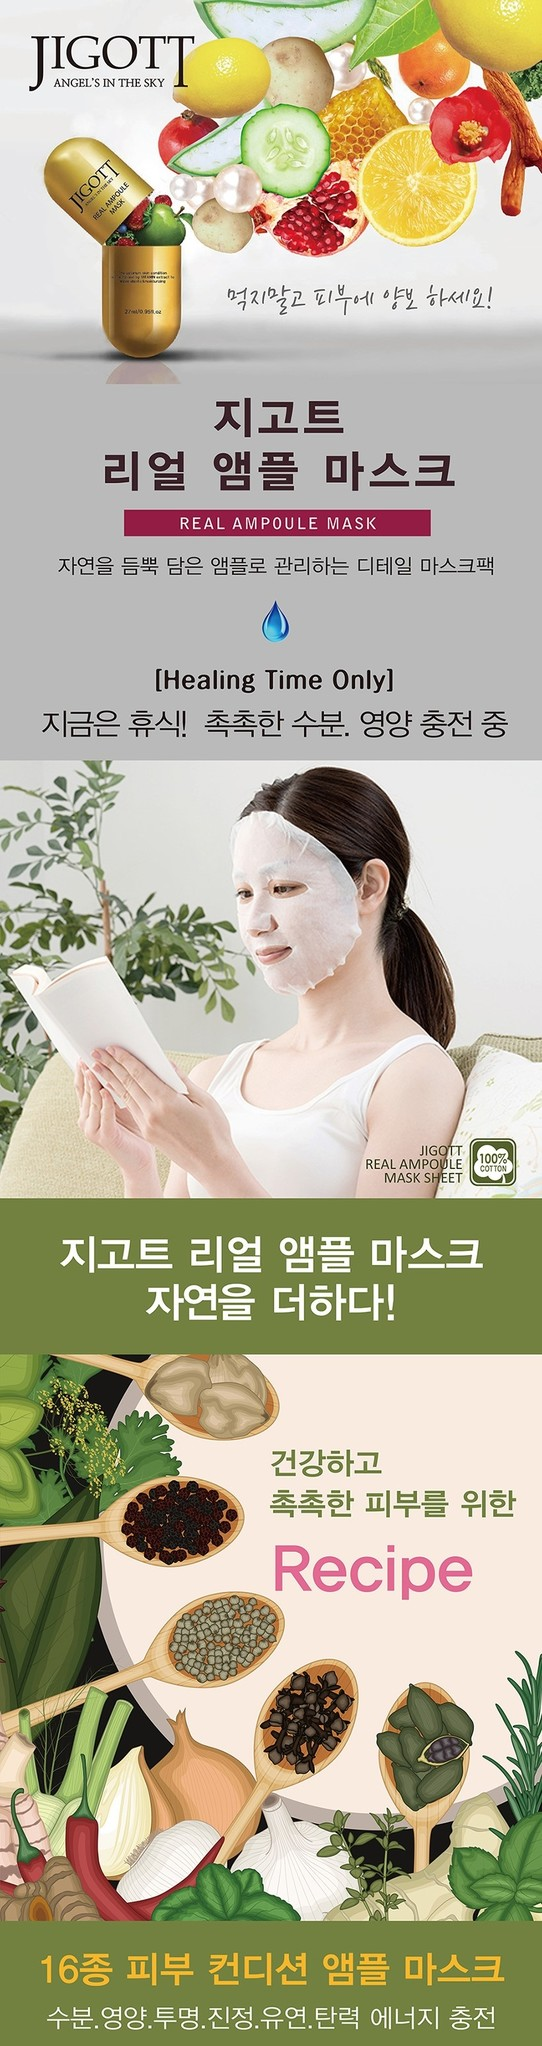 Real Ampoule Mask [Lotus Flower]-2